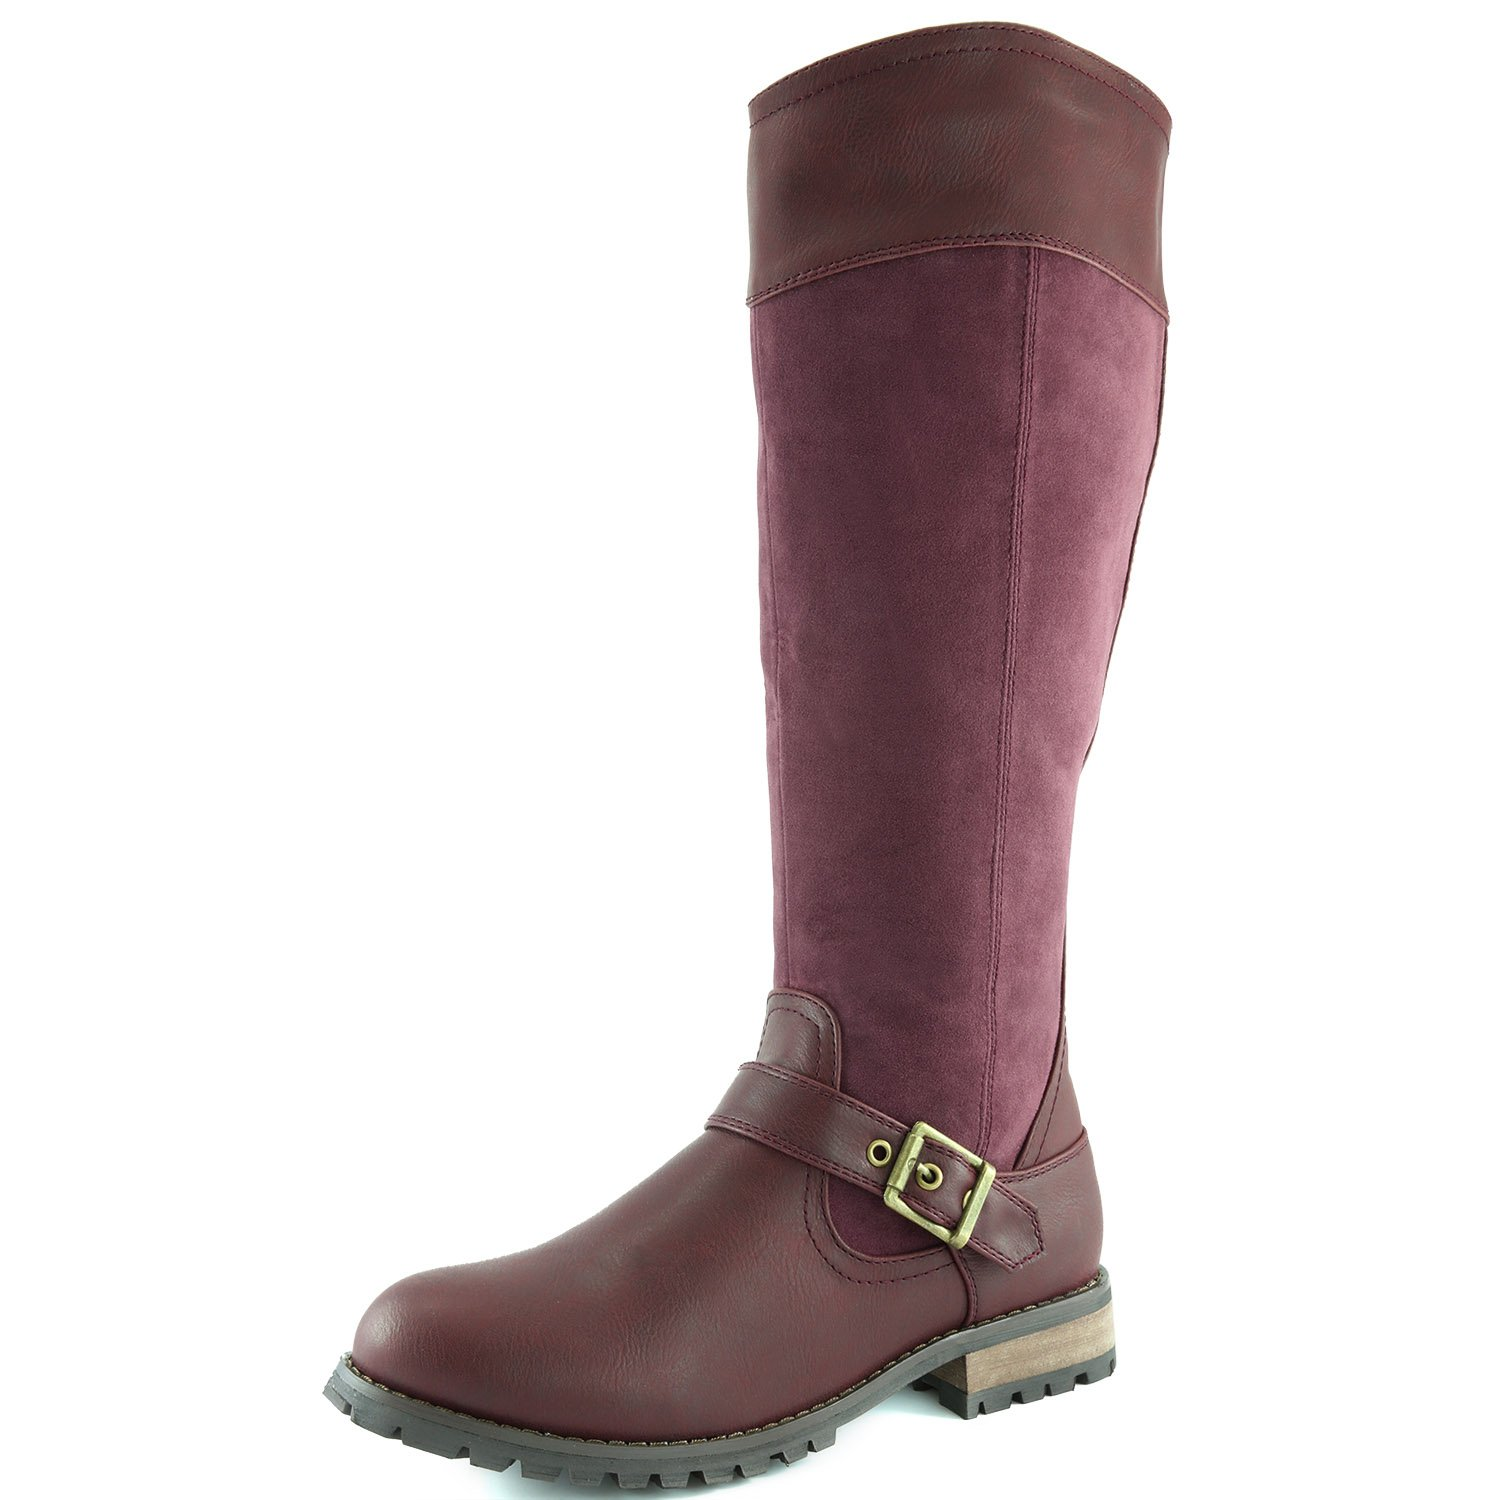 DailyShoes Women's Modern Mid-Calf Combat Boot Riding Booties Mid Calf High Tube Knee-high Low Heel Buckle Short Boots Fashion Toe Casual Soft Sole Winter Warm for Women Combat-19 Wine Sv 13 by DailyShoes